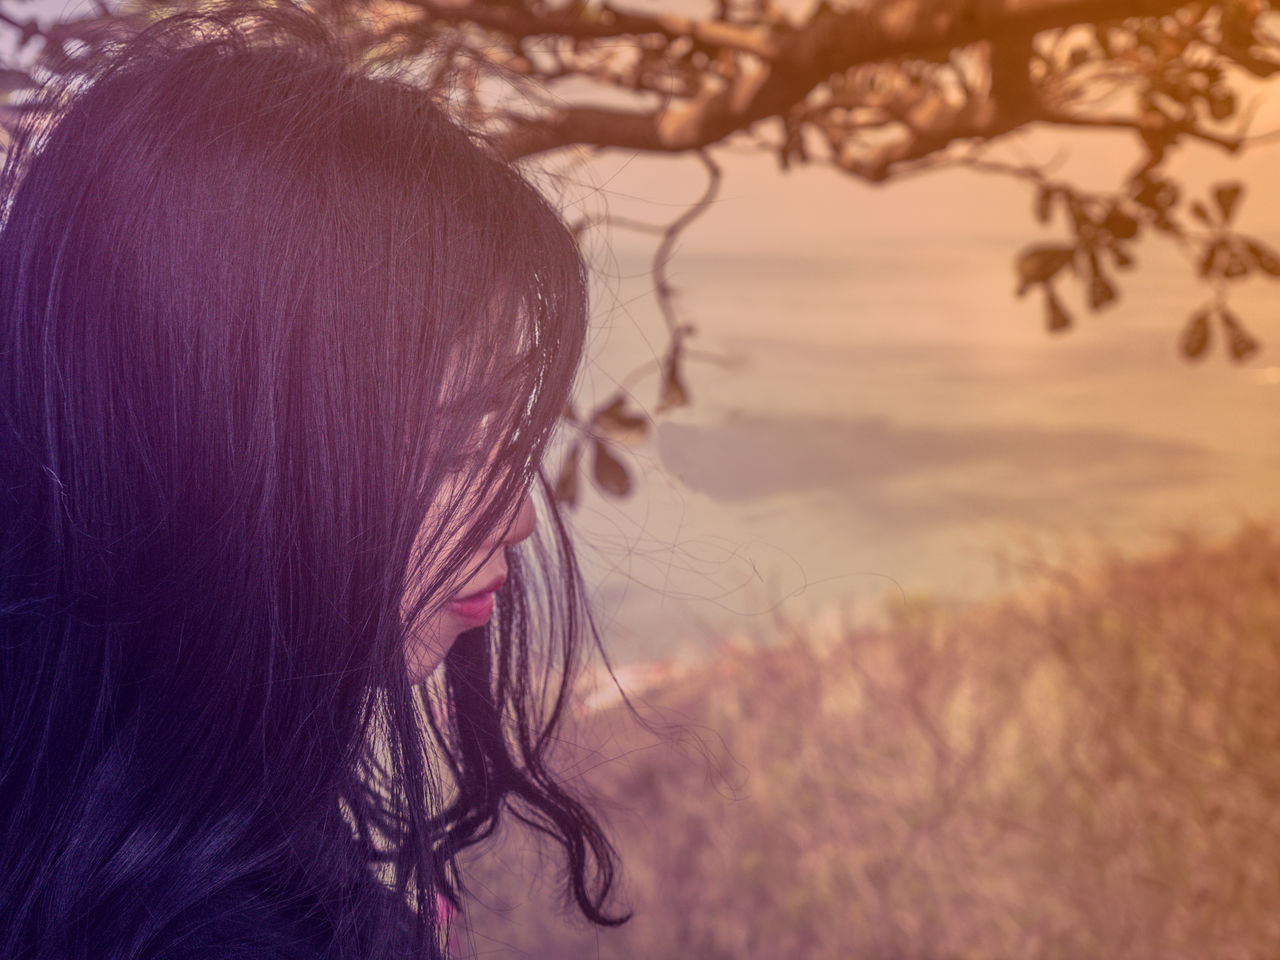 Black Hair Branches Close-up Day Emotional Photography Emotional Photos Fair Skin Girl Hair Headshot Lifestyles One Person Outdoors Photoshop Real People Red Lips Side View Tree Getting Inspired Getting Creative Beauty In Nature Tranquility